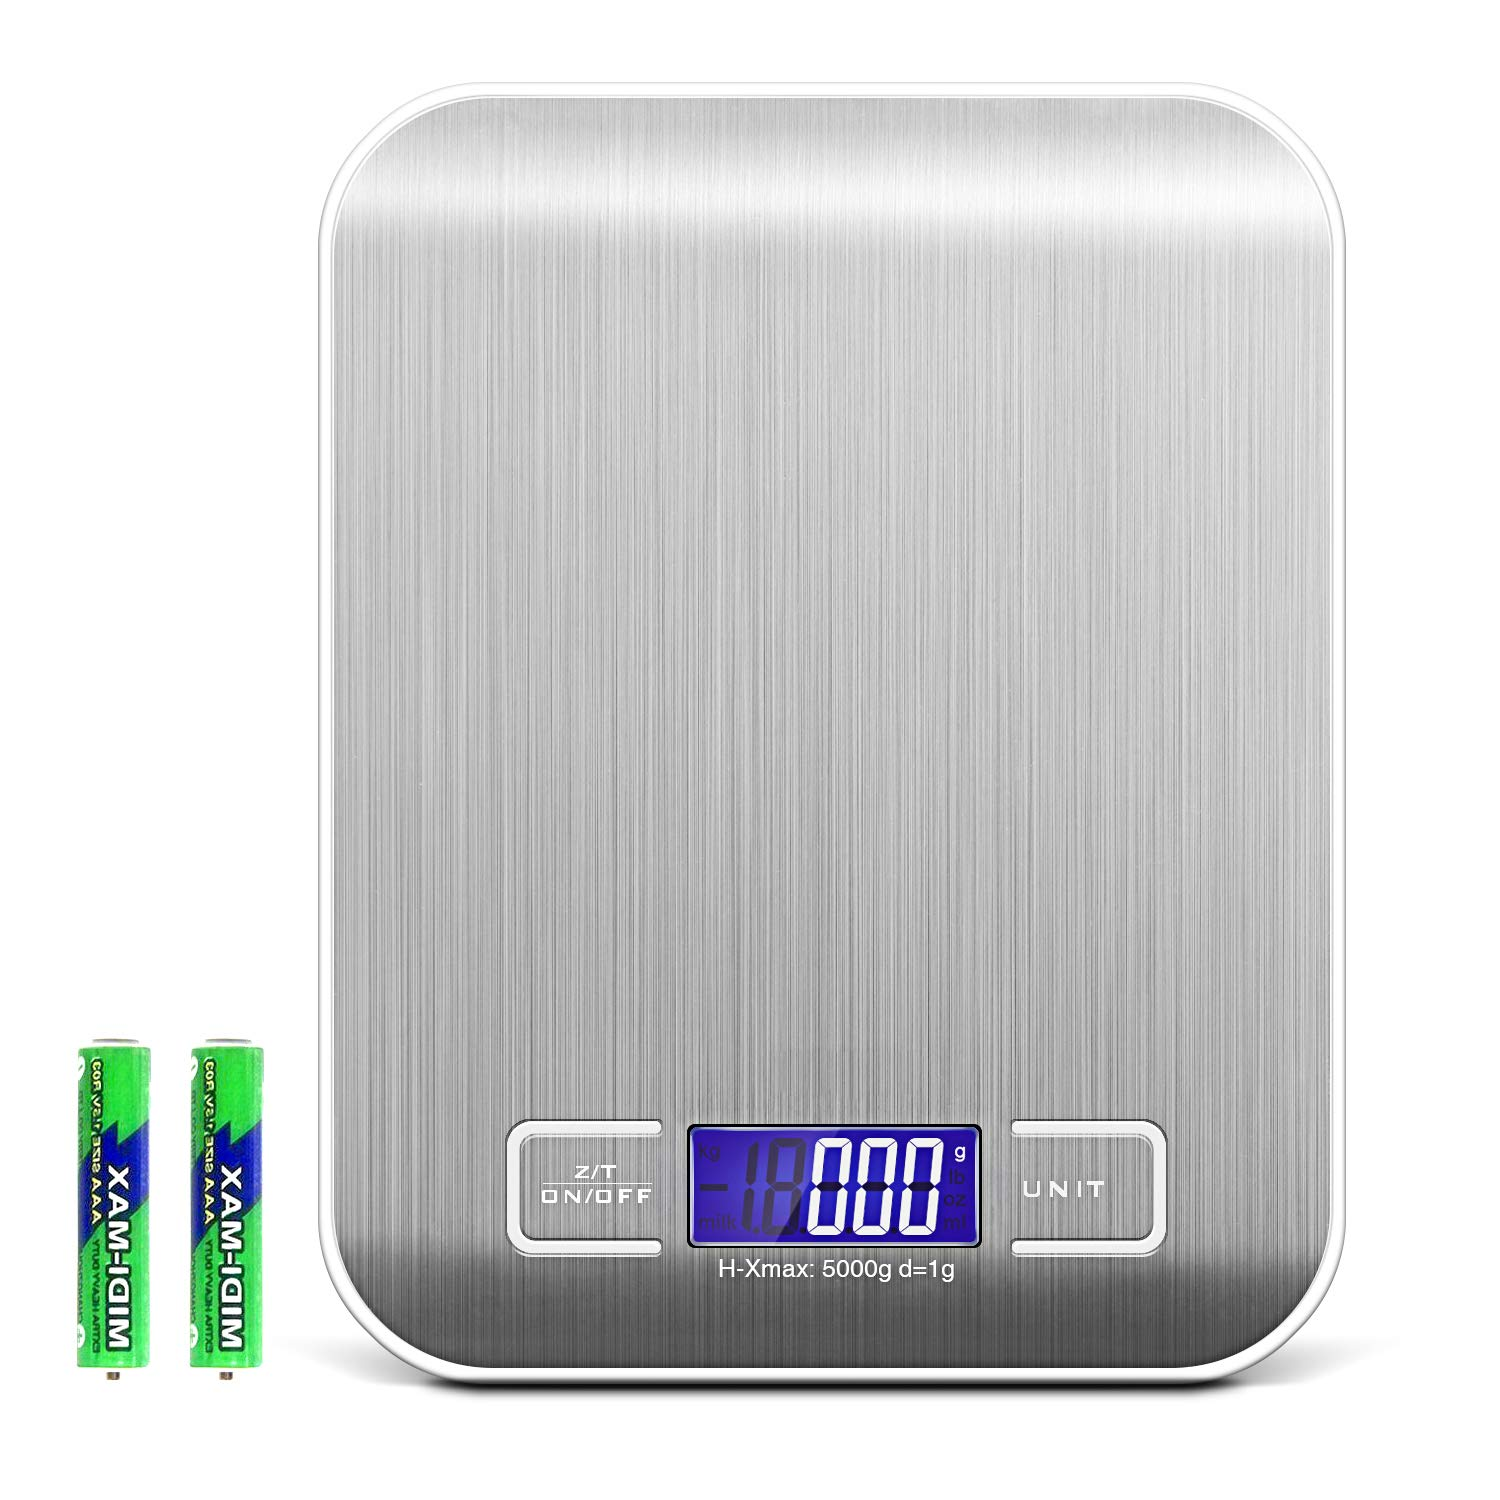 Criacr Digital Kitchen Scale, (5kg/11lb) Food Scale, Electronic Cooking Food Scale, Accurate, Silver Amir UK-KA7